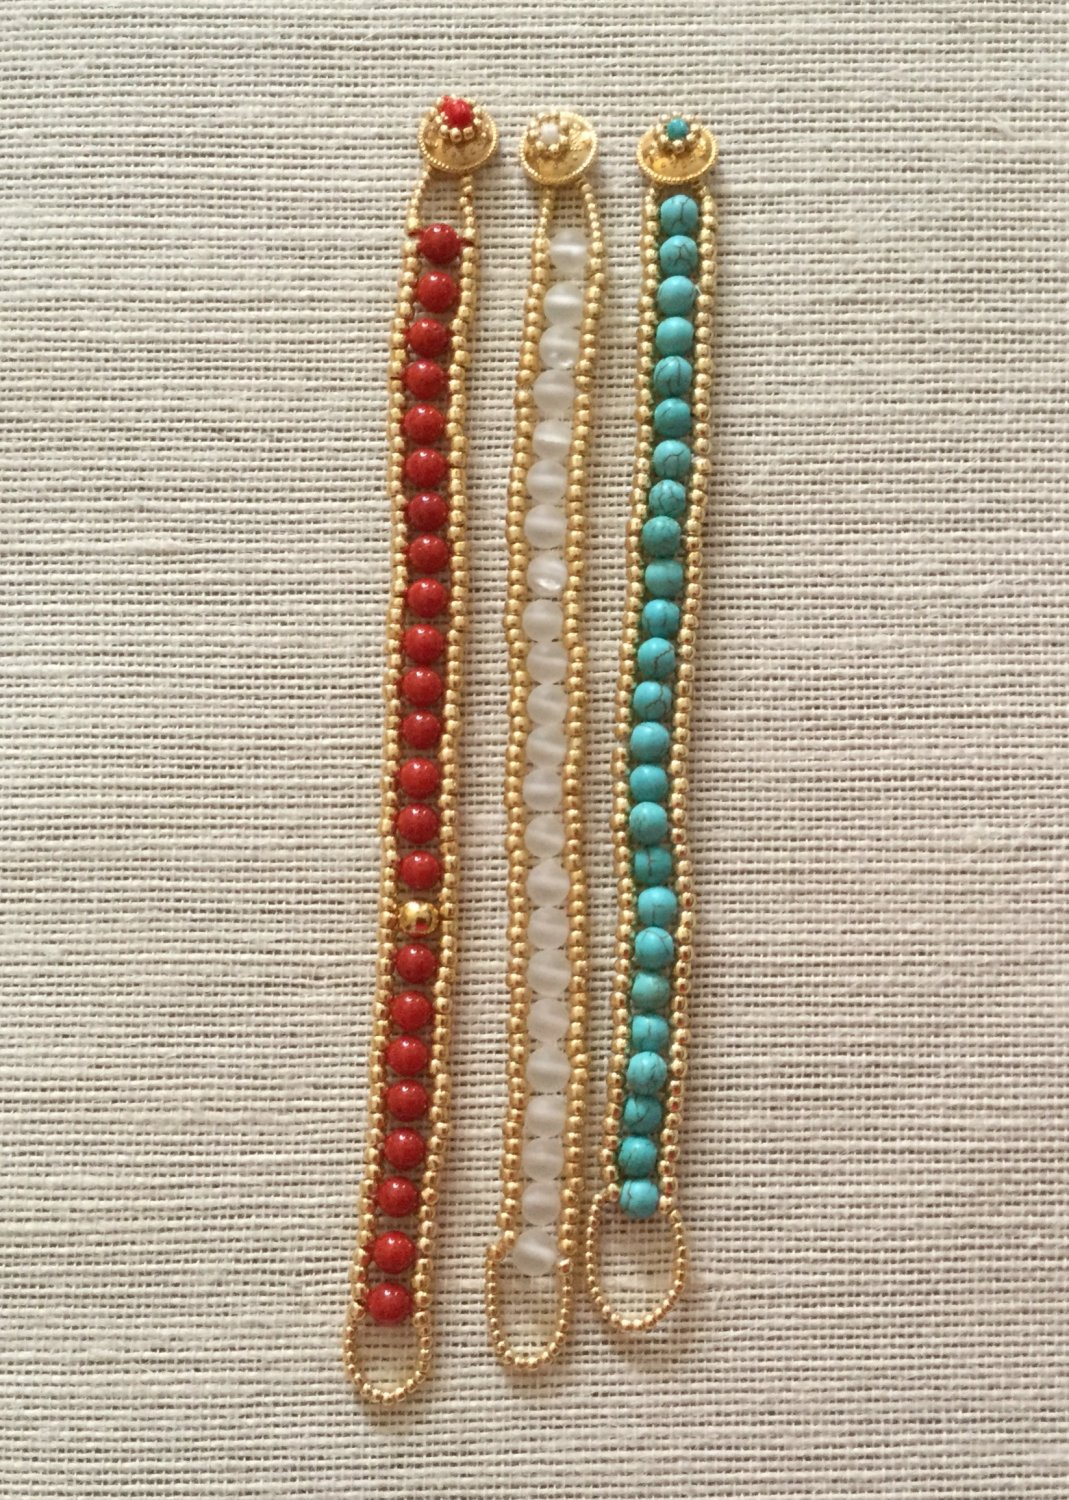 Women's Coral, Crystal, Or Turquoise Gemstone Wrap Style Bracelet